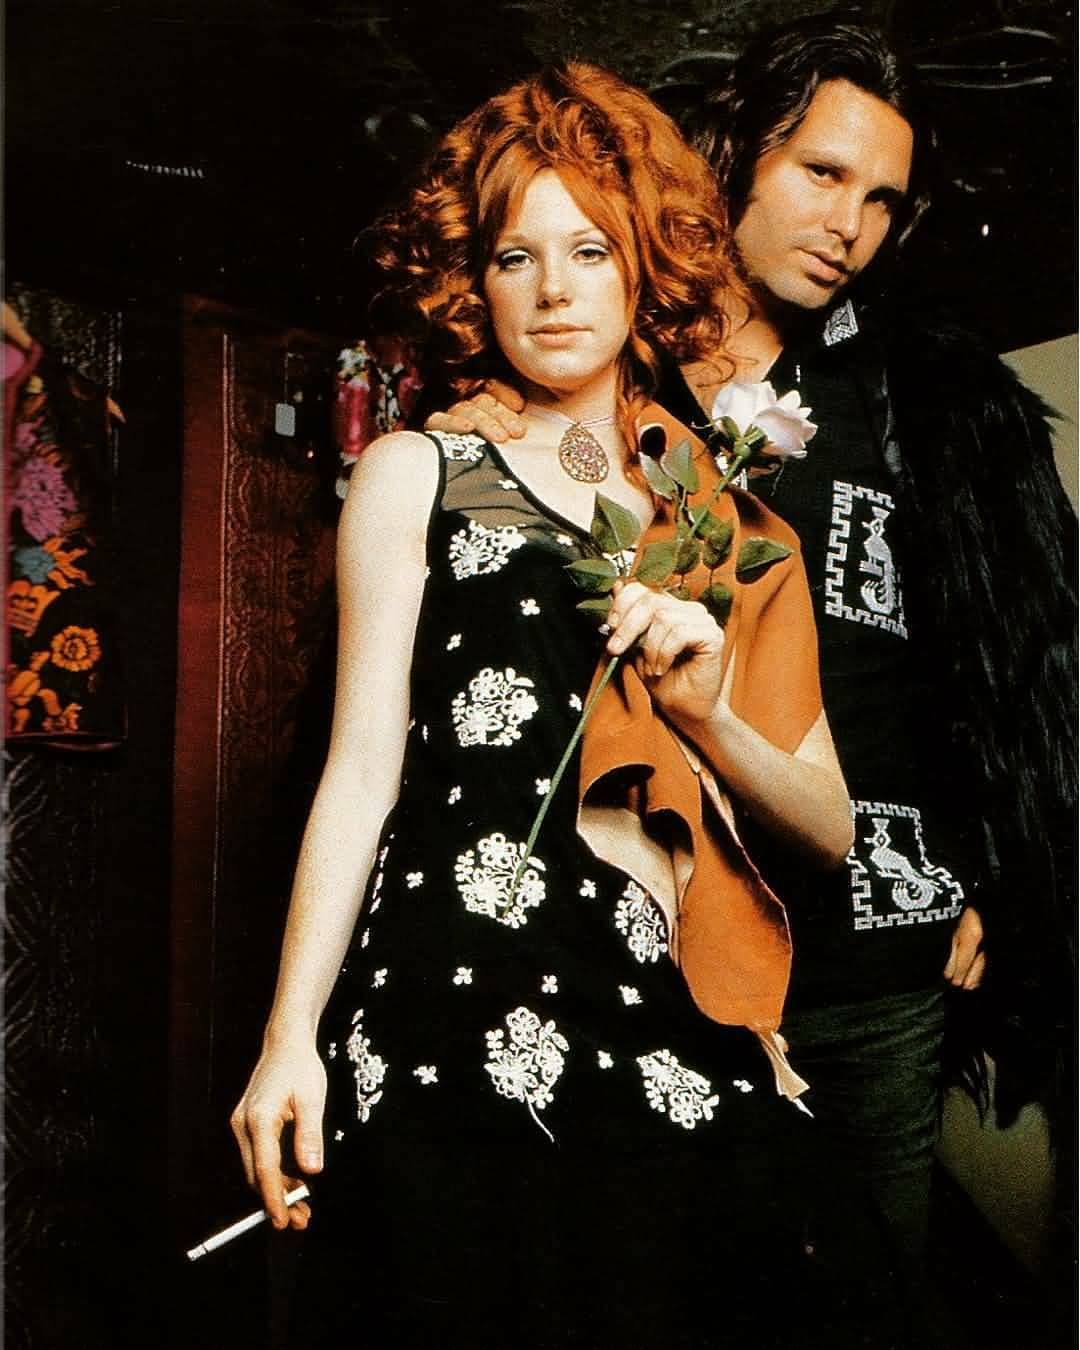 Some Rare Pictures Of Jim Morrison with Girlfriend Pamela Courson 38